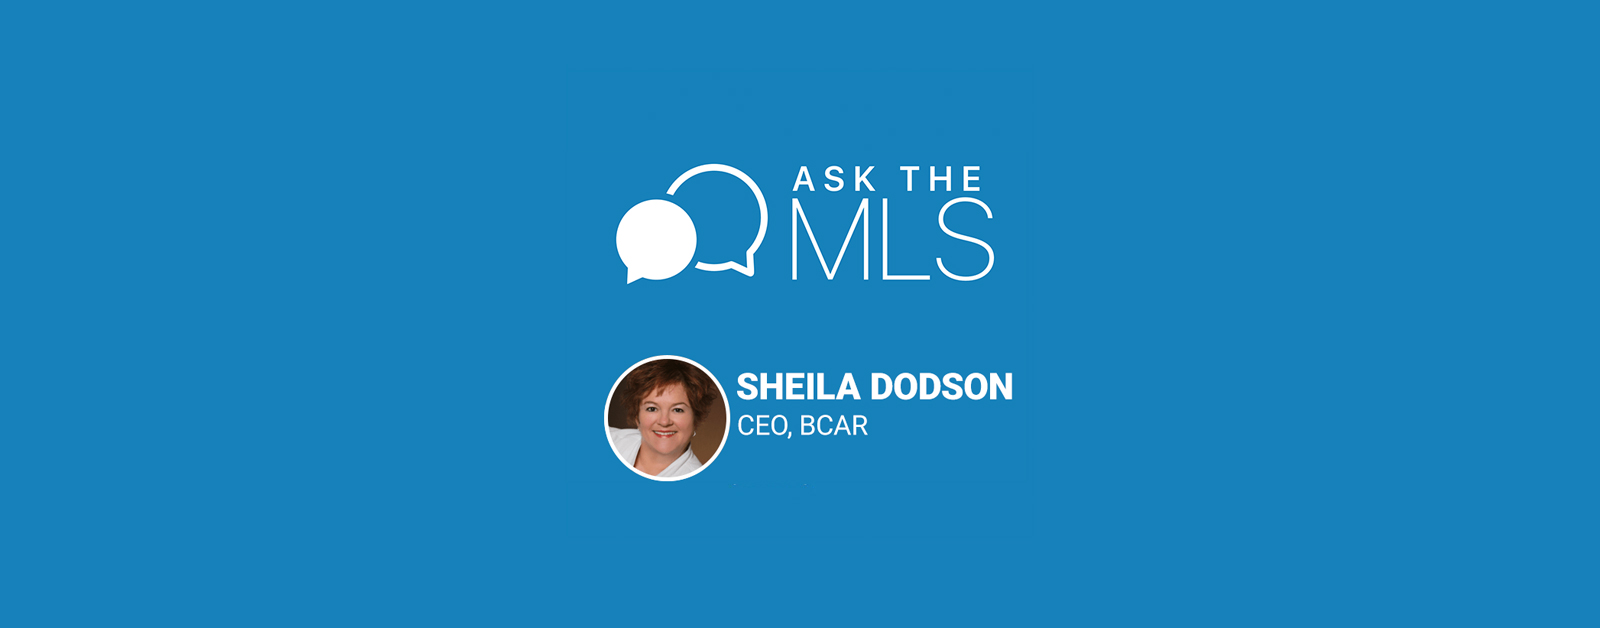 Ask the MLS Sheila Dodson